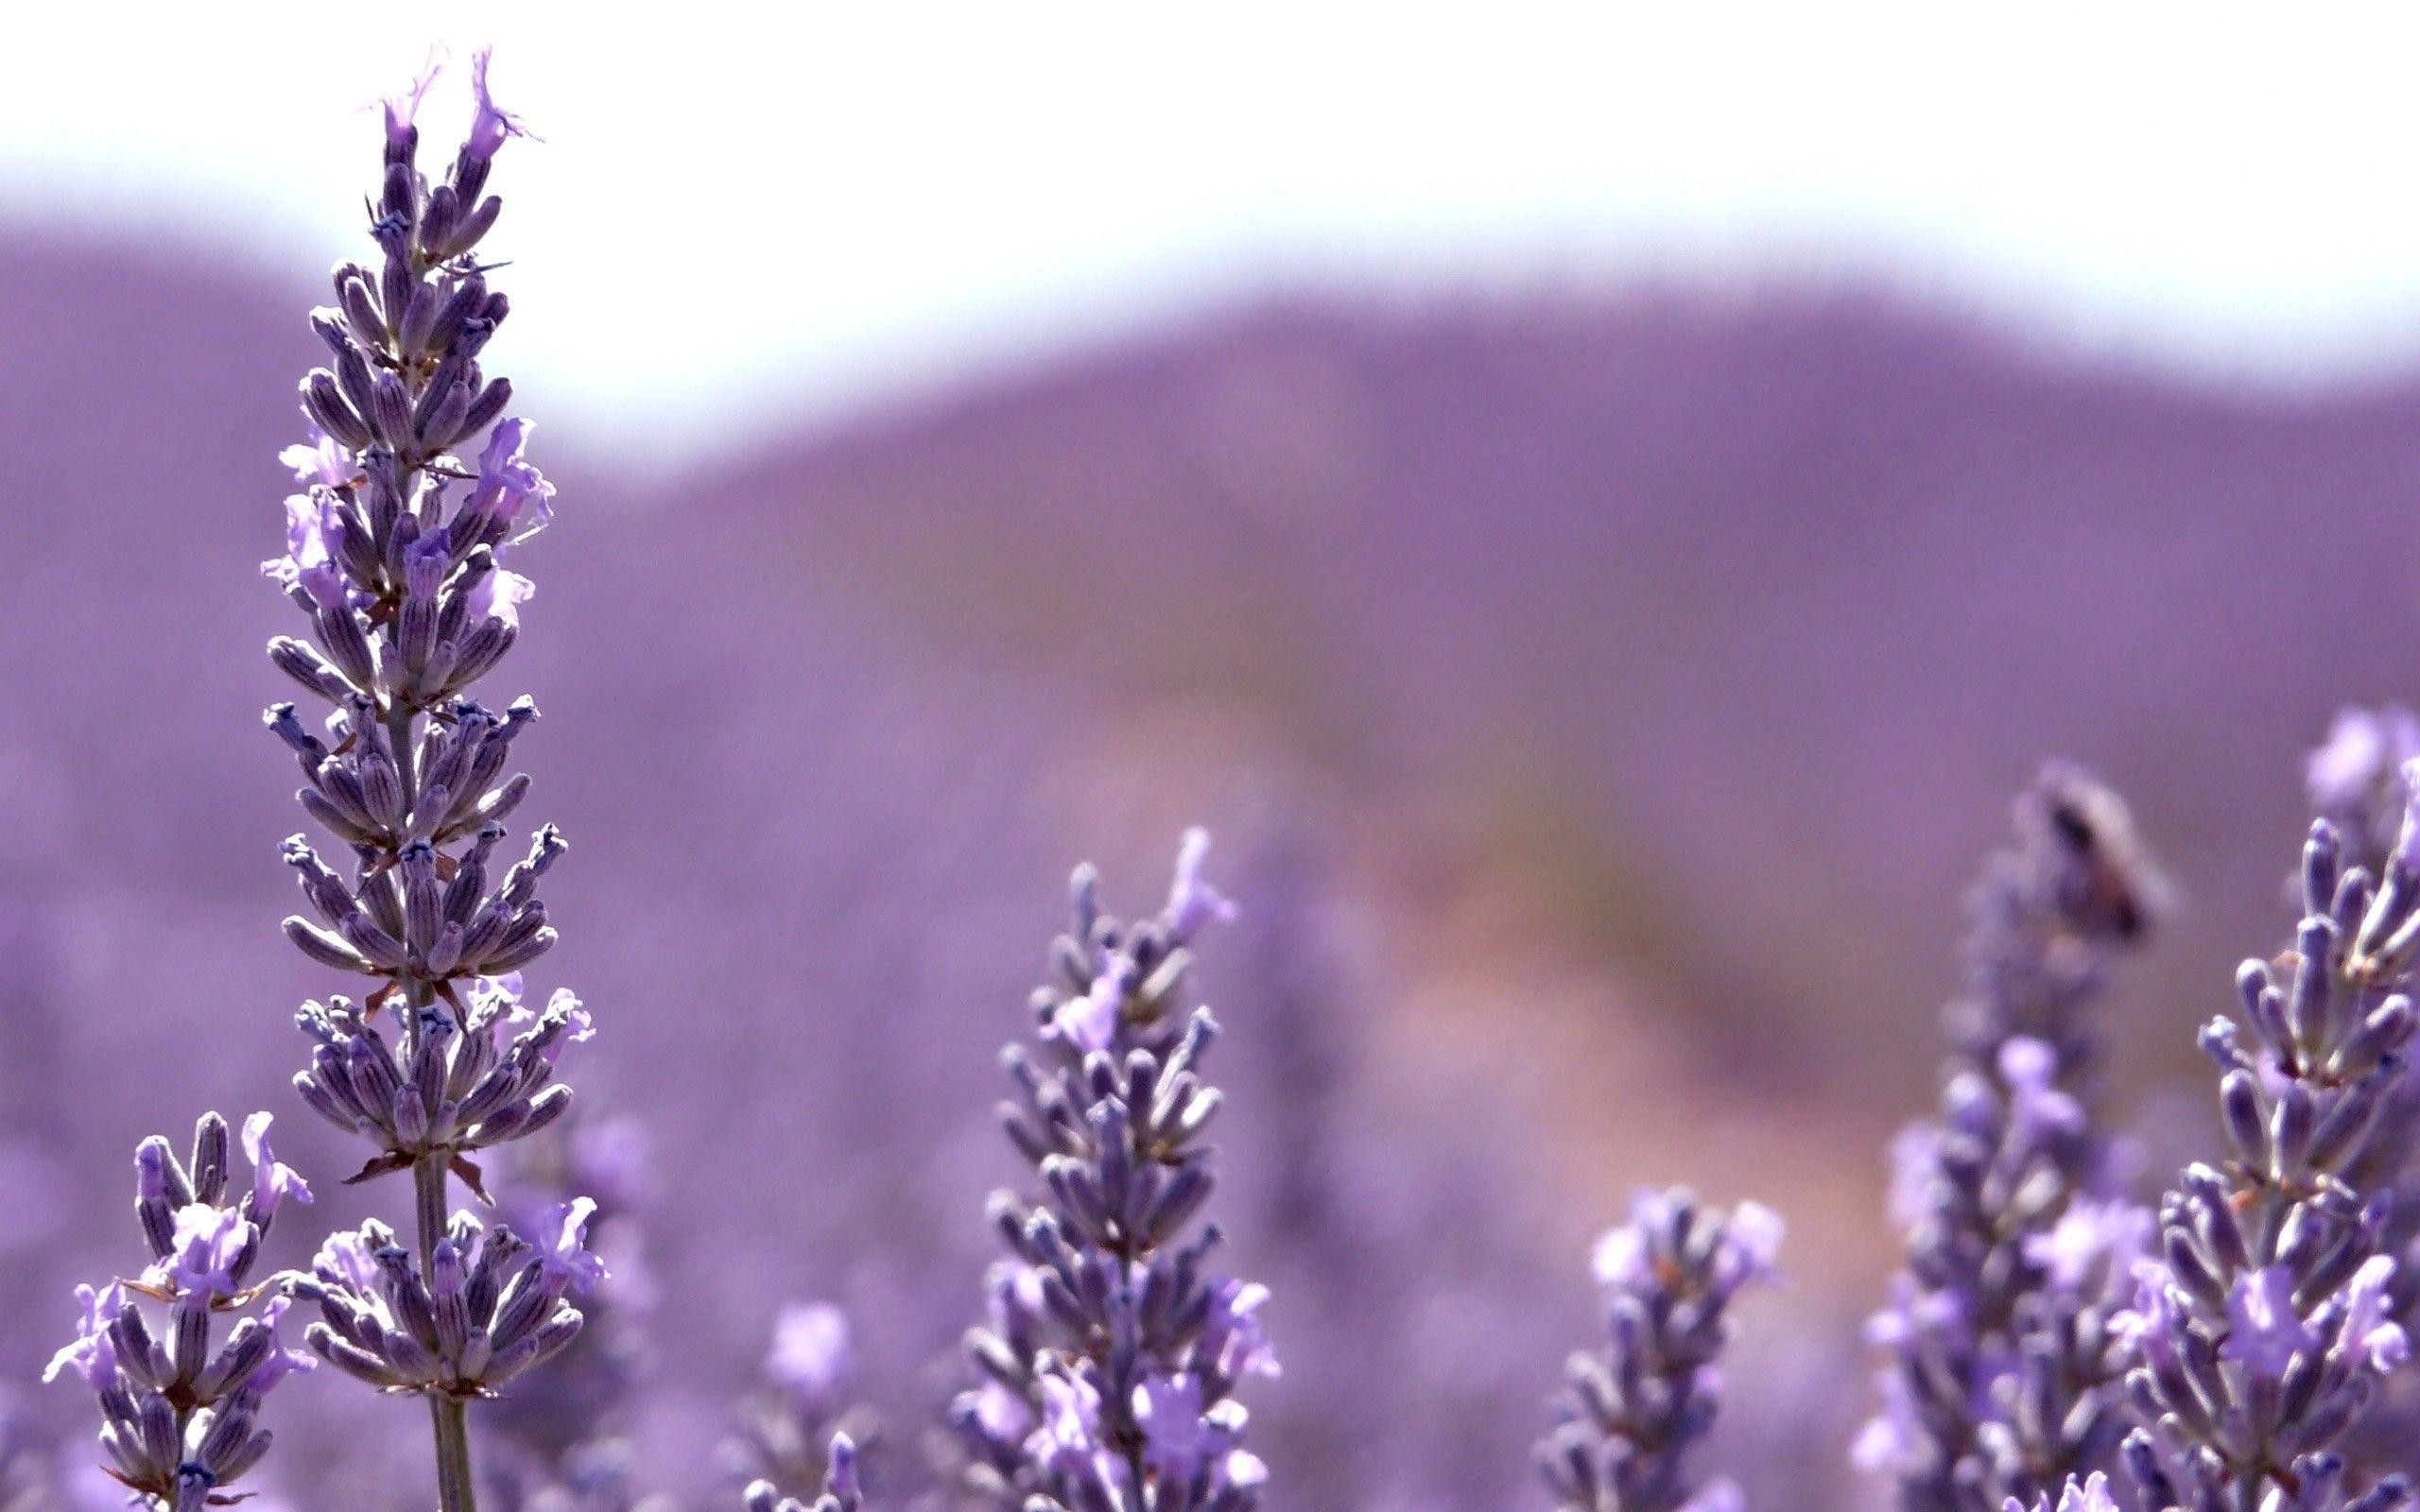 Lavender Flower Background Hd Images 3 HD Wallpapers | aduphoto.